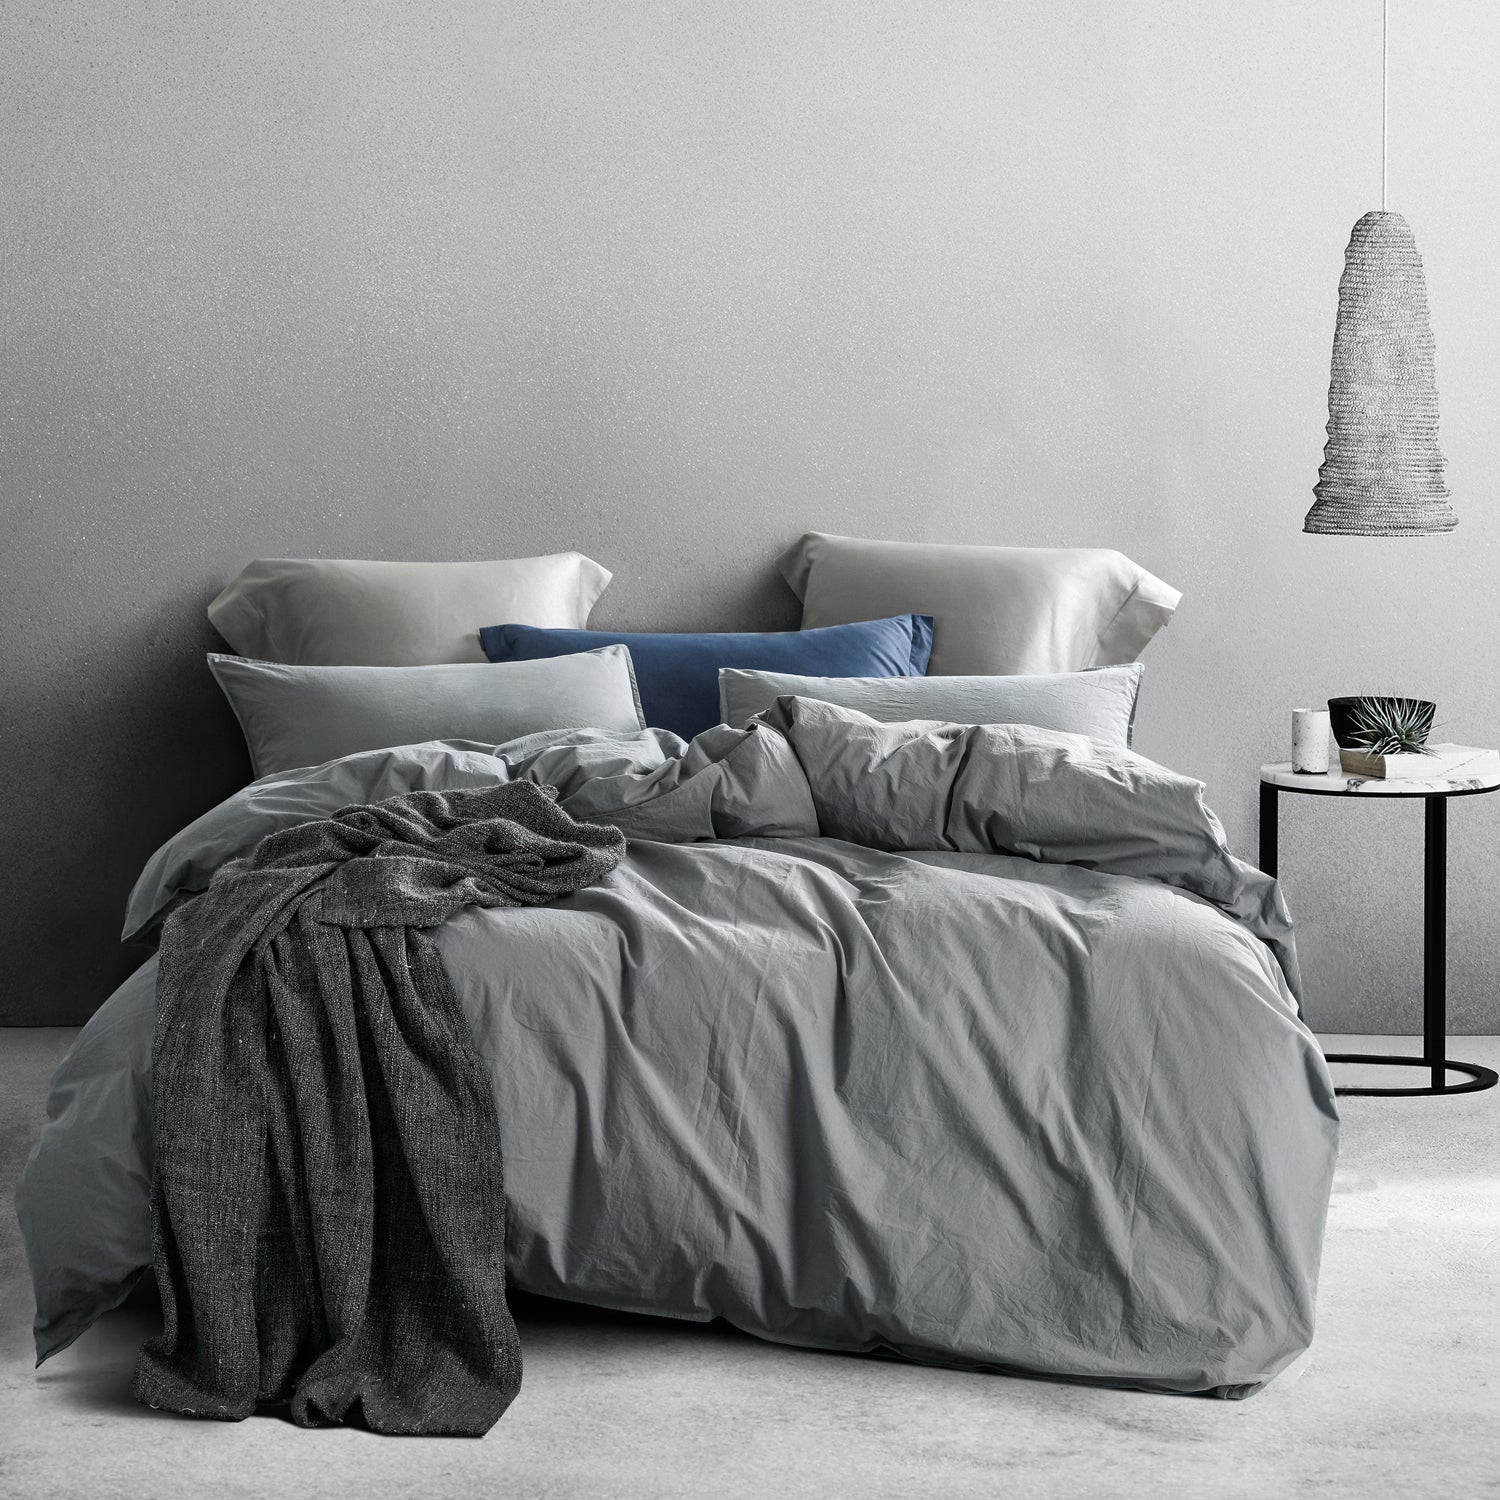 duvets cover bedroom id bath bright oversized covers sets green multiple white comforter piece product gold set twin dispatch and king for of mint view quilt target purple hashtag full cotton washed colours linen bag in bedding duvet sizes sale products size sheets index